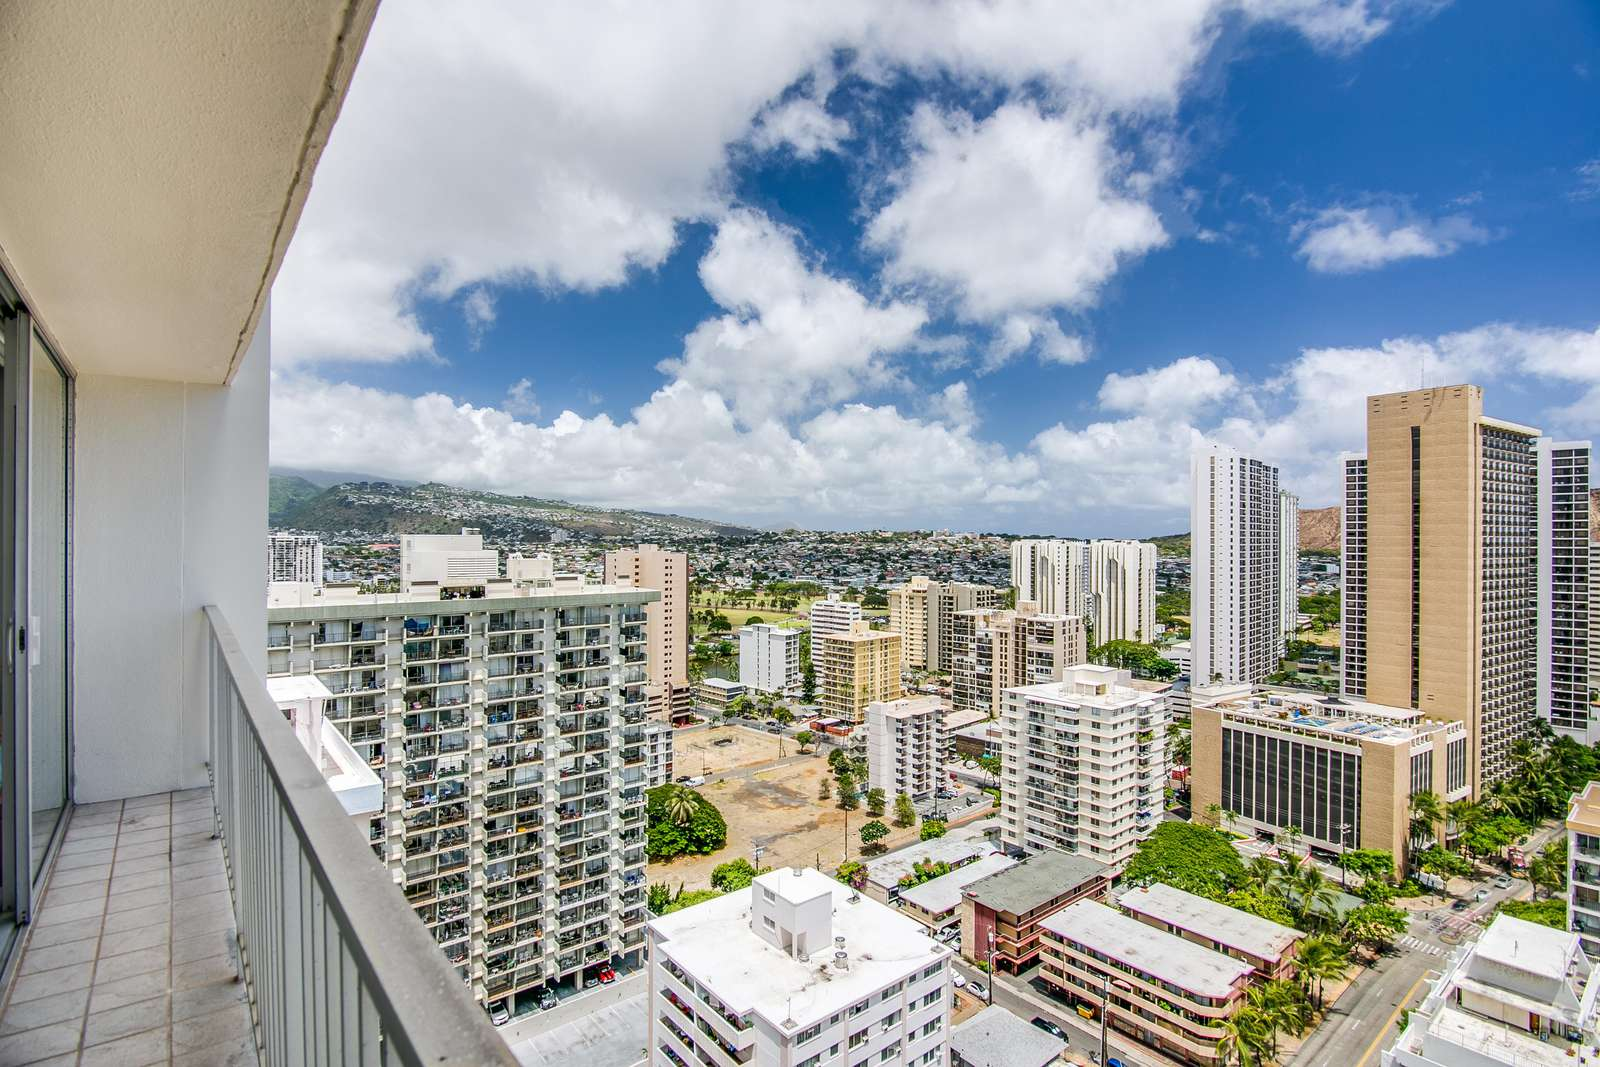 We are in the Heart of Waikiki - Everything is easy to walk to.